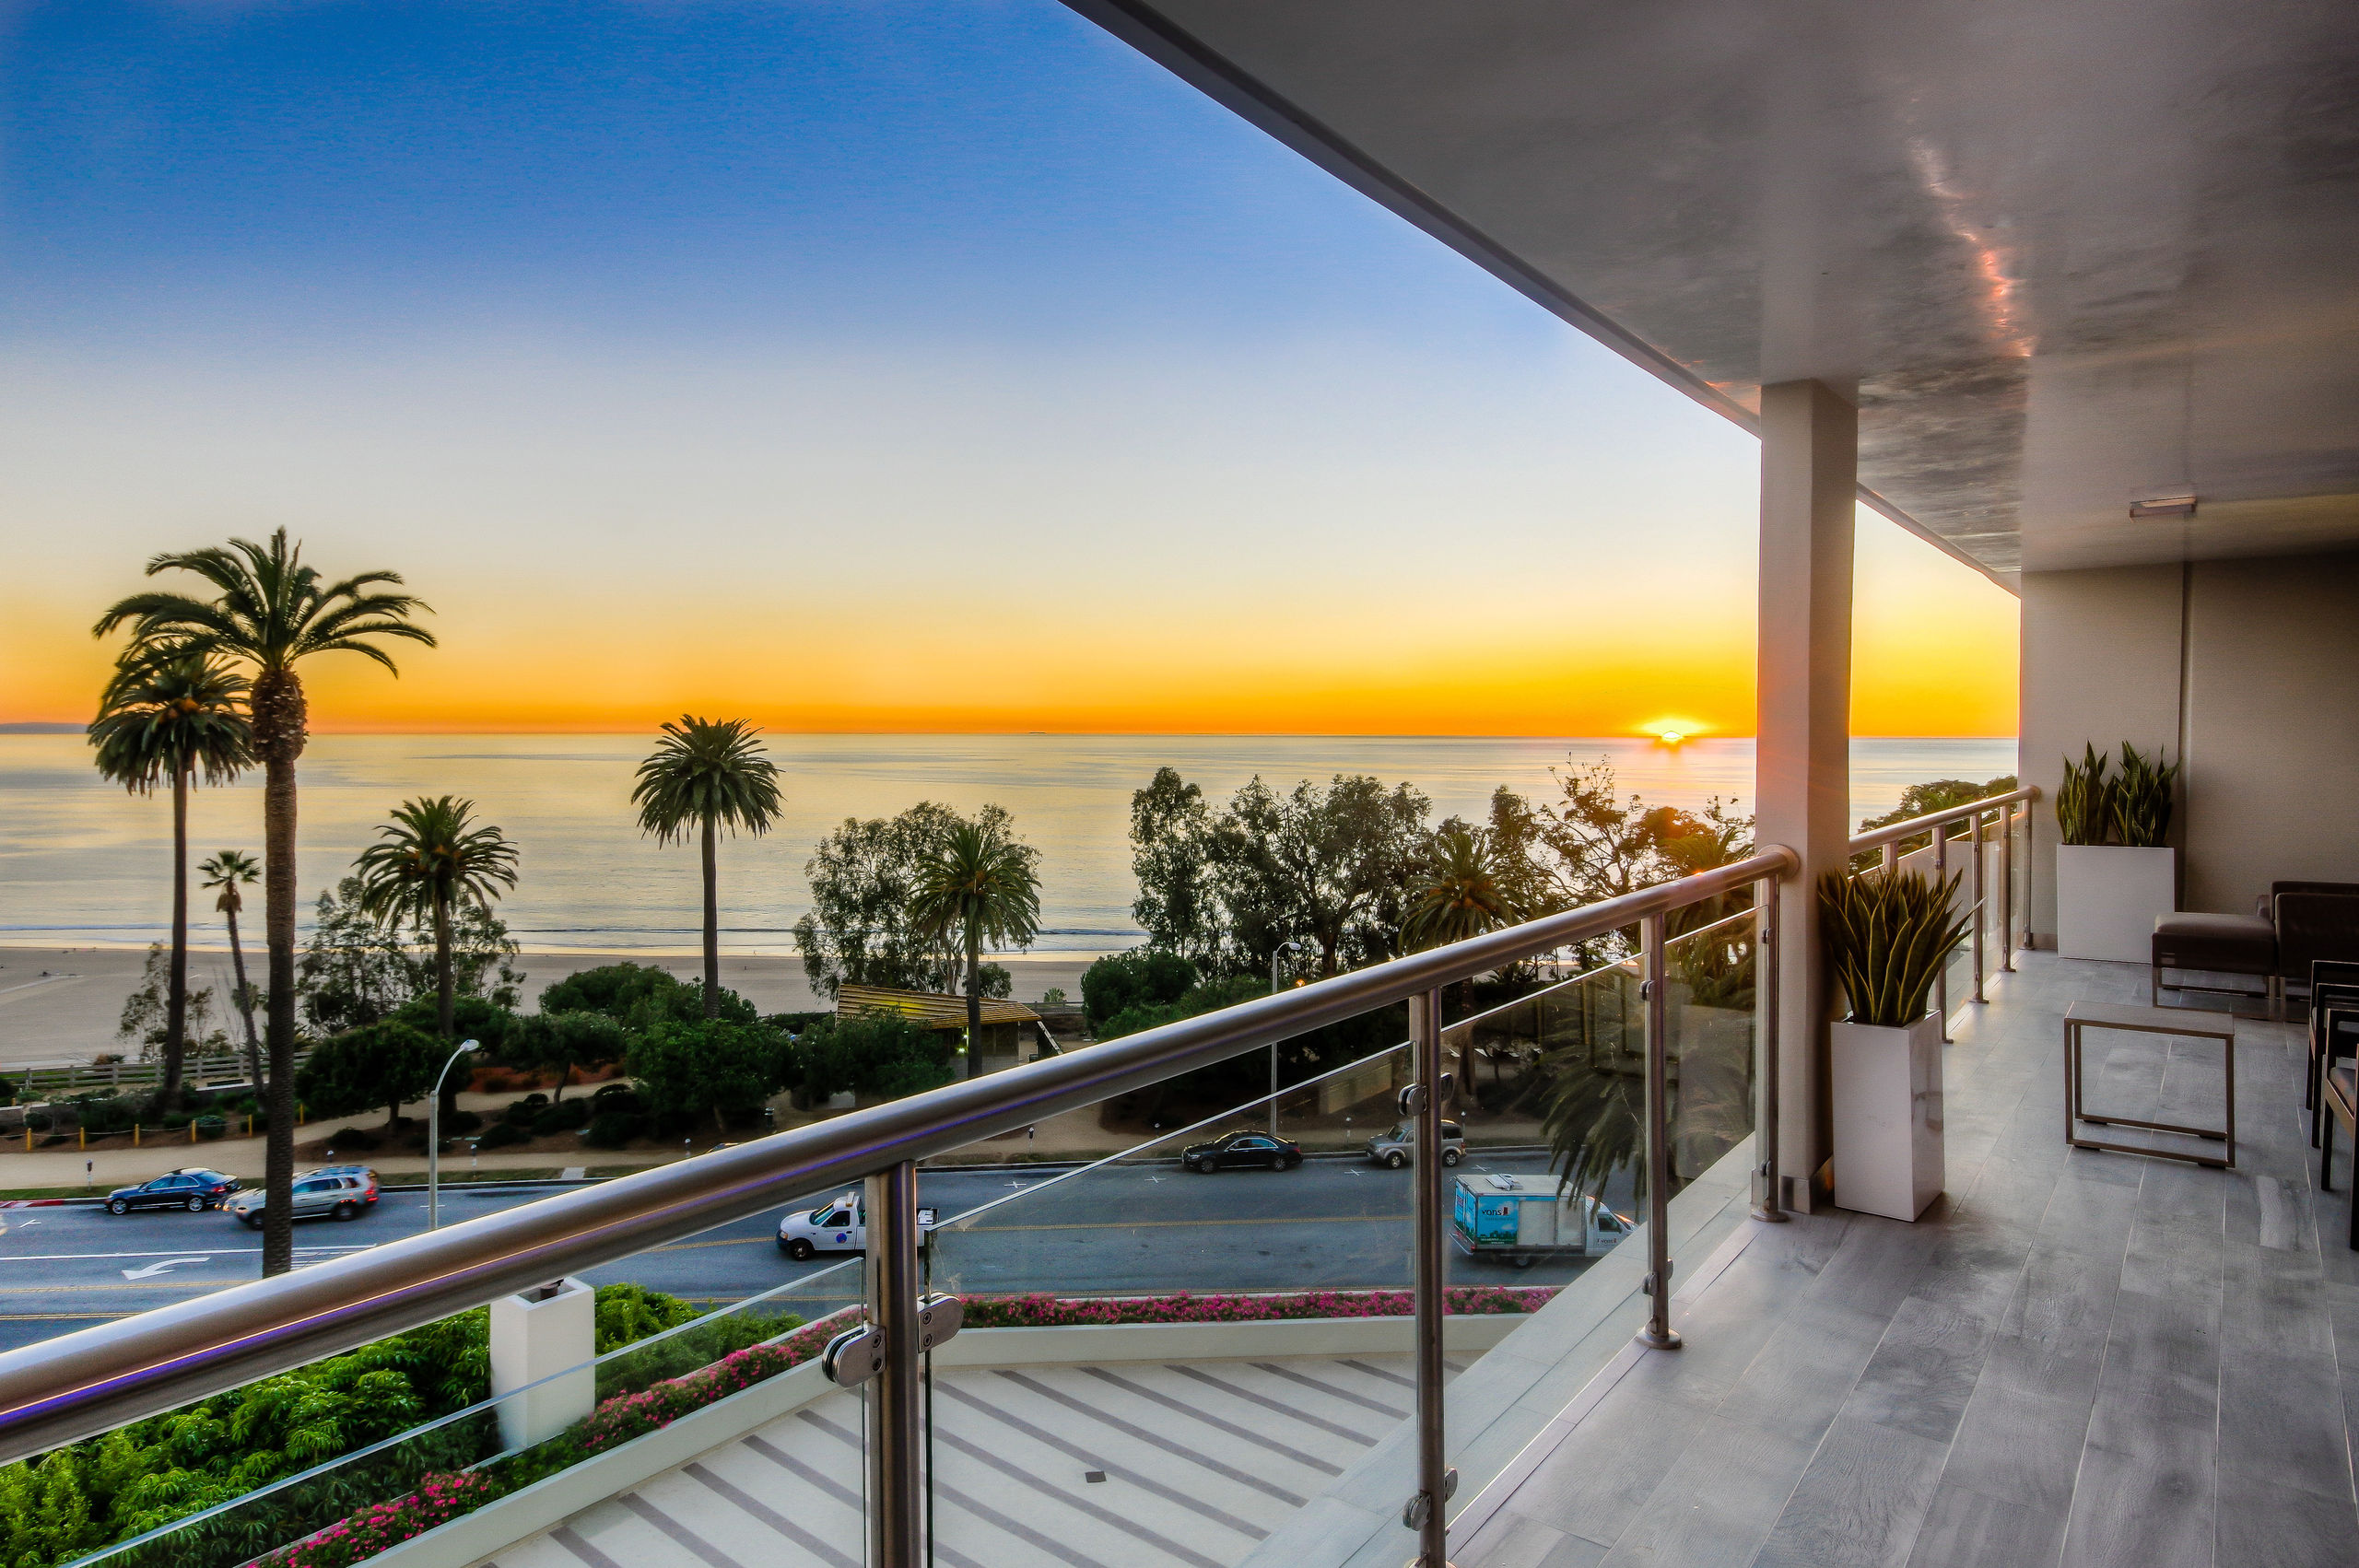 706b 707b 3 bedrooms 2 5 baths santa monica for Balcony with view